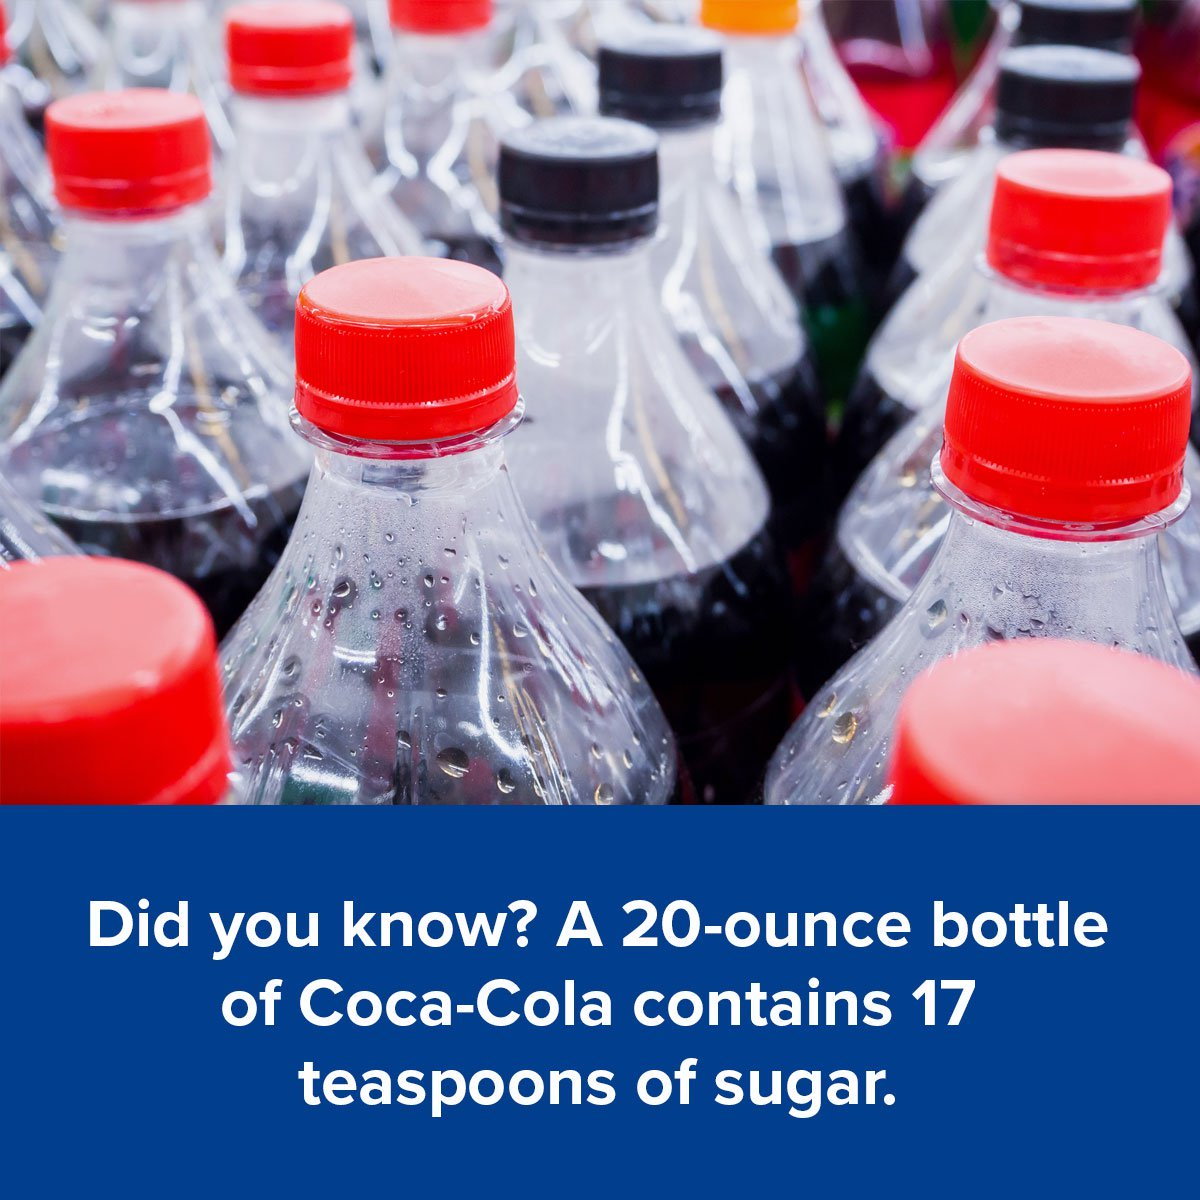 Did you know? A 20-ounce bottle of Coca-Cola contains 17 teaspoons of sugar.